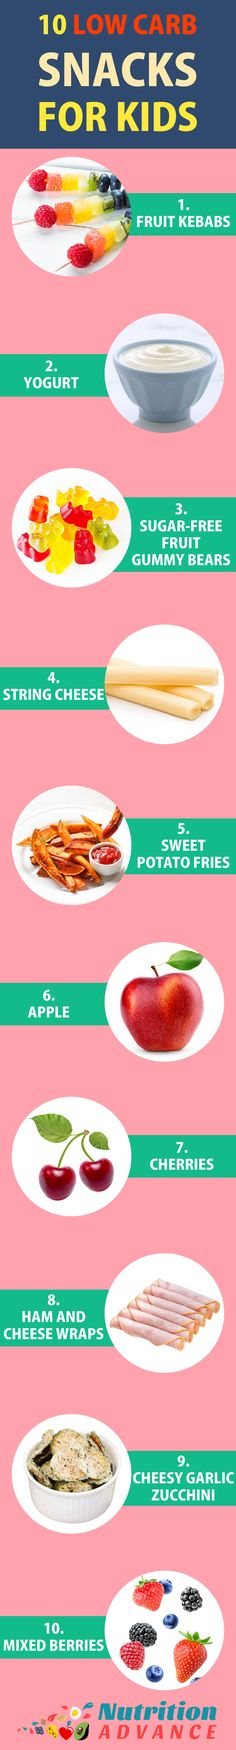 10 low carb snacks for kids here are some fun bright and healthy